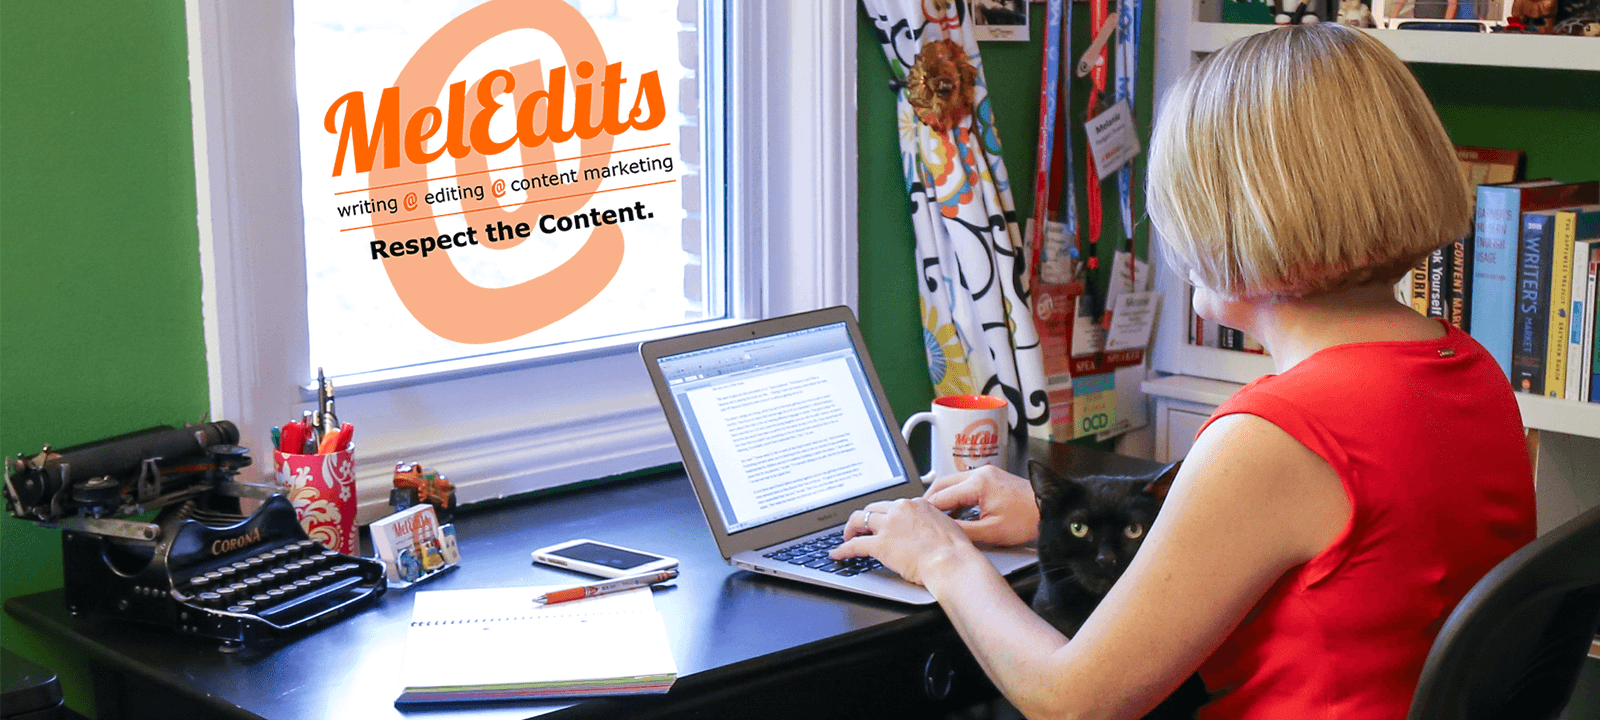 MelEdits Writing, Editing, Content Marketing - Respect the content.